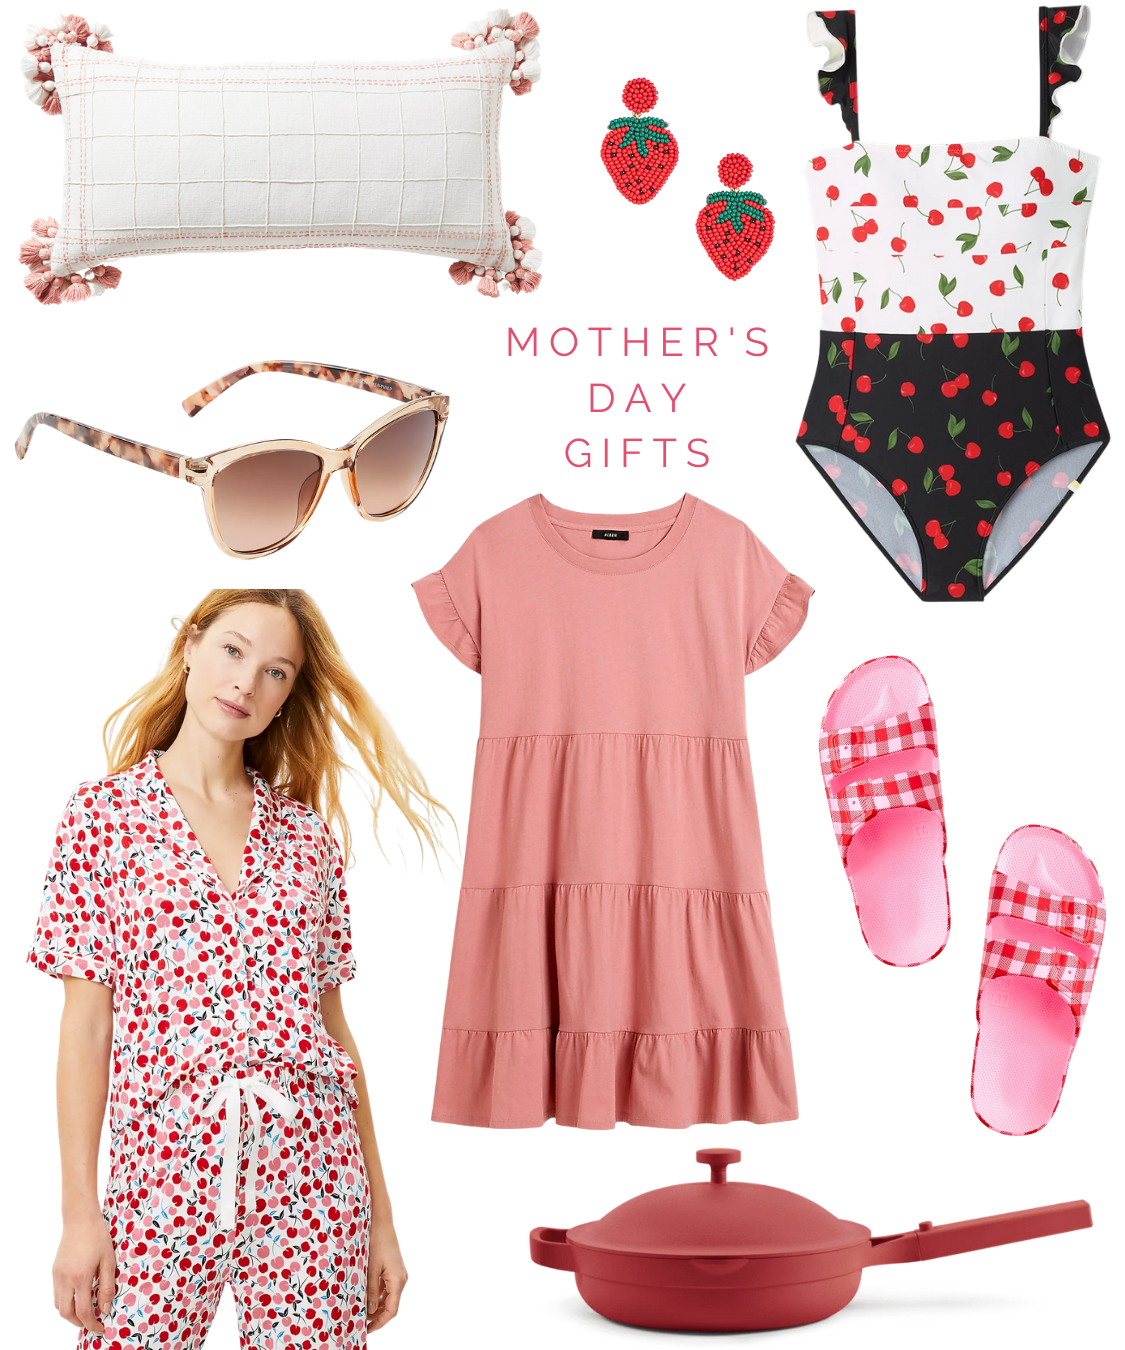 mother's day gifts to order online, mother day gifts online, buy mother's day gifts online